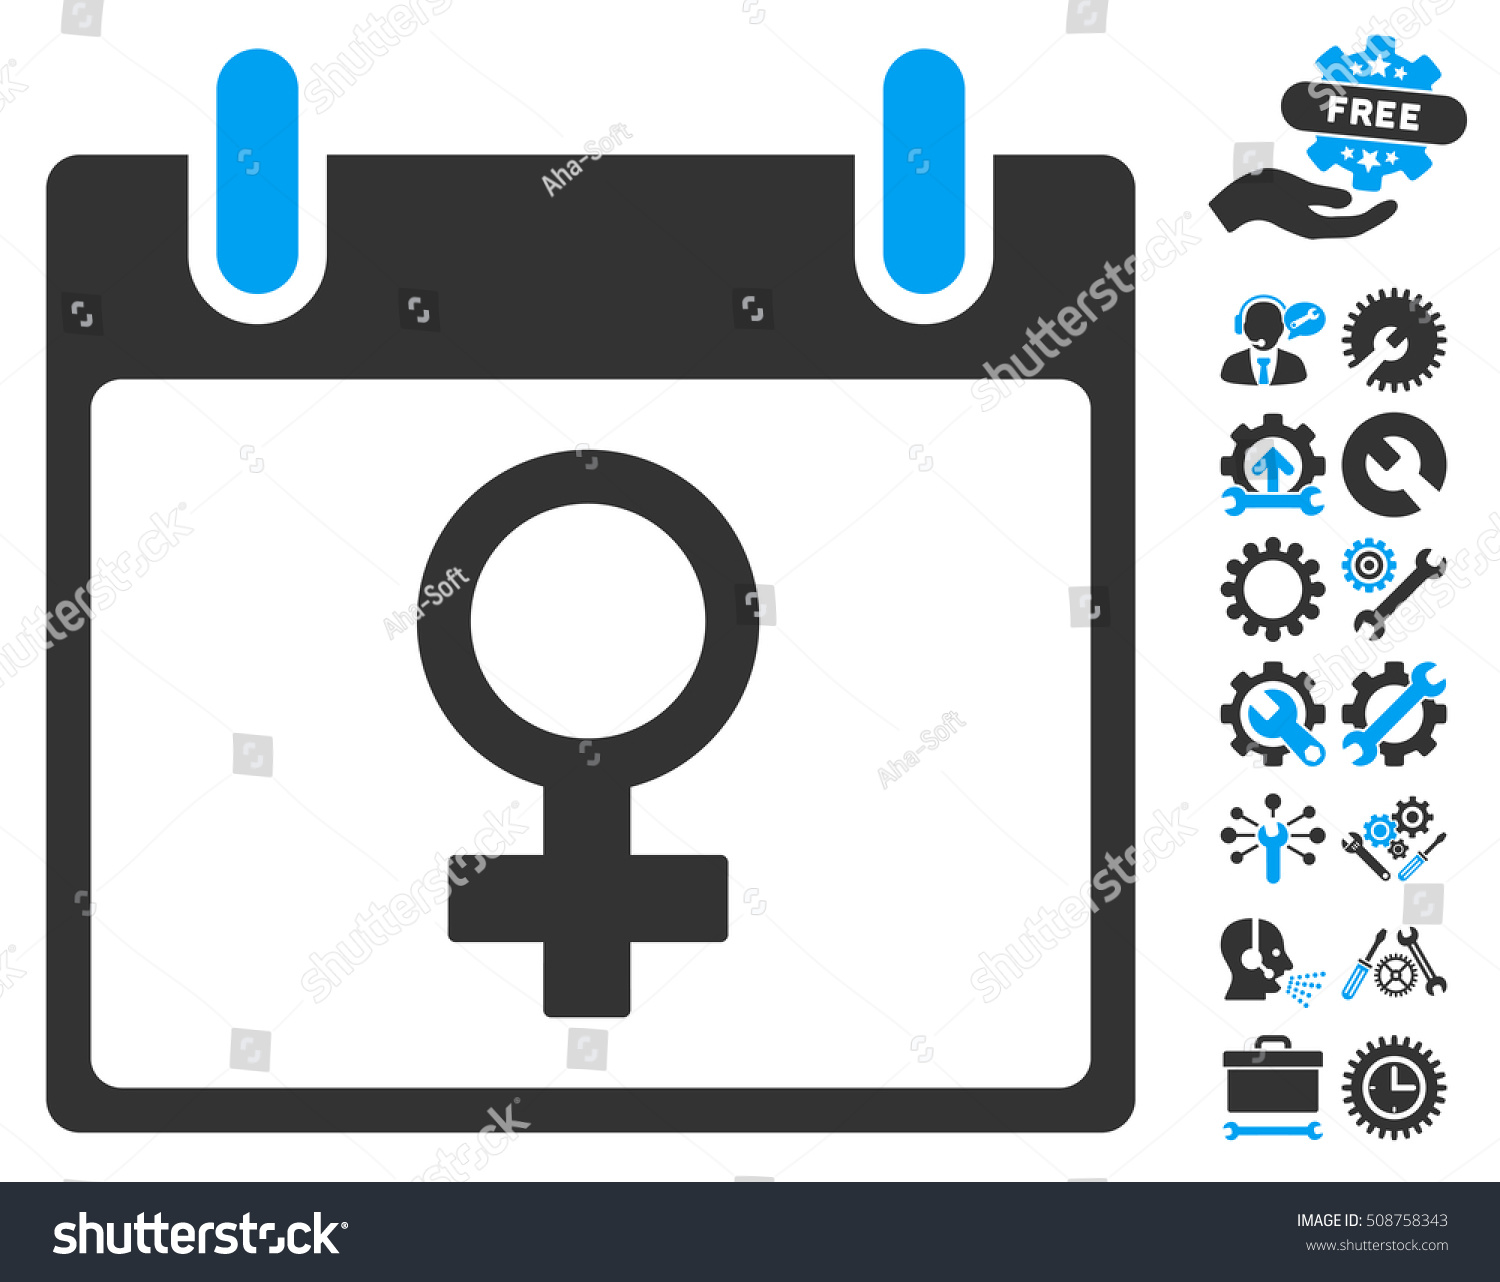 Venus Female Symbol Calendar Day Pictograph Stock Illustration